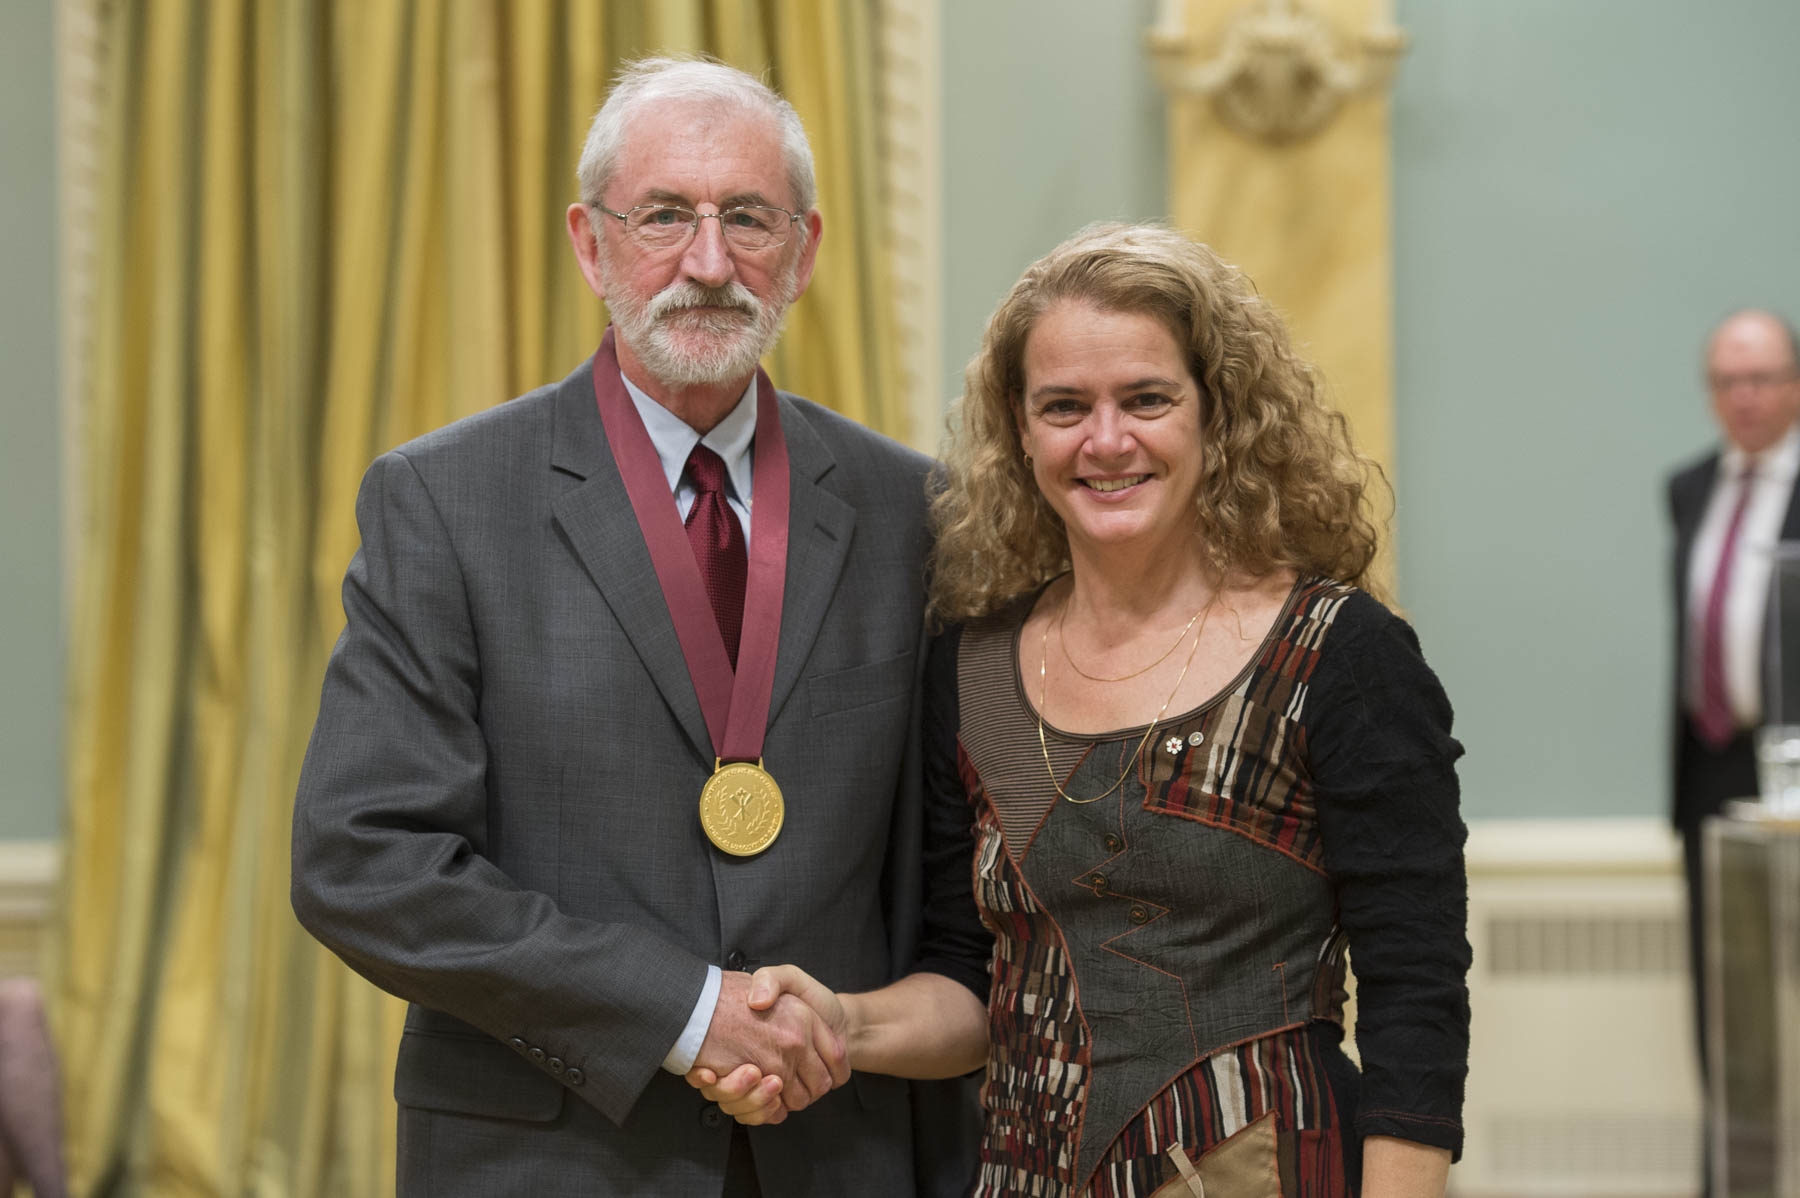 Her Excellency presented the Governor General's History Award for Popular Media (Pierre Berton Award) to Daniel Francis from North Vancouver, British-Columbia, for bringing Canadian history to a wider audience.